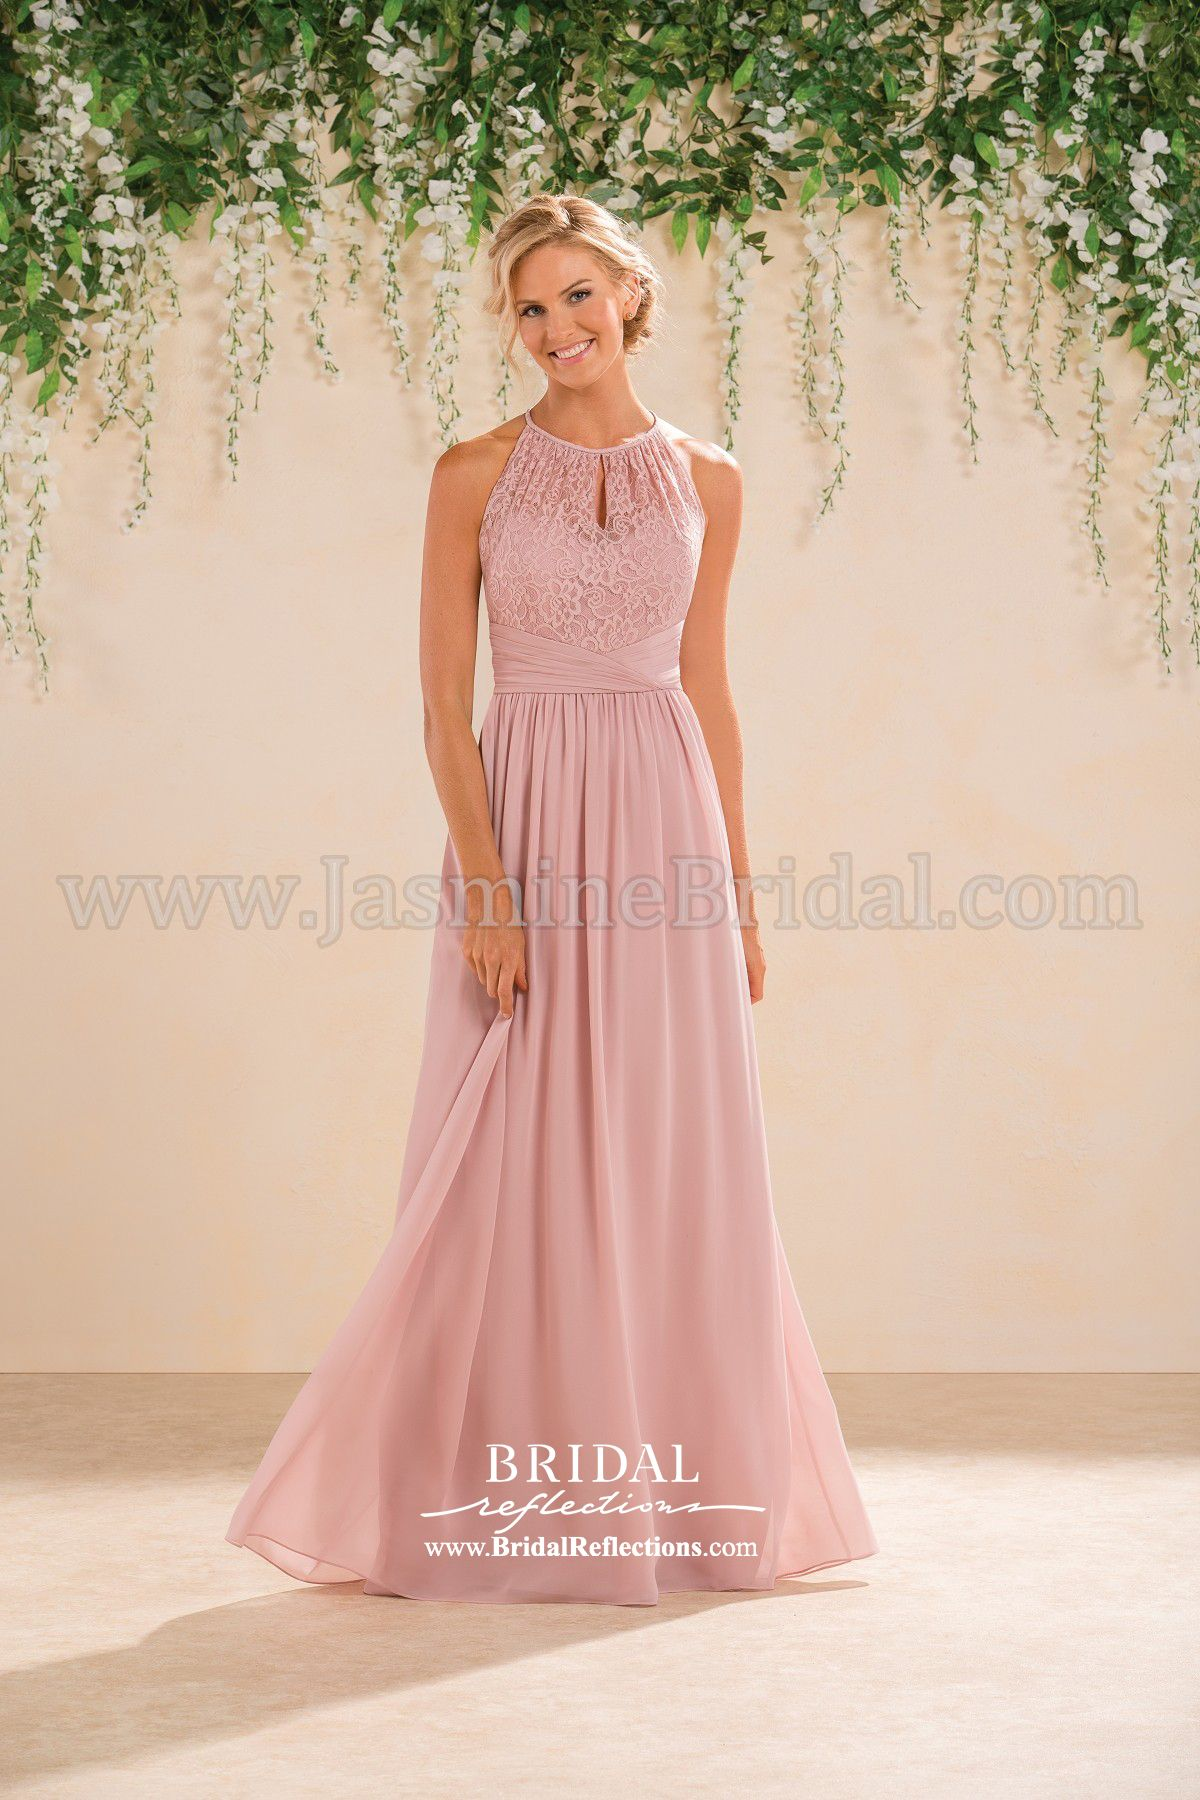 B2 by Jasmine Bridesmaids Dresses | Bridal Reflections | Fashion ...